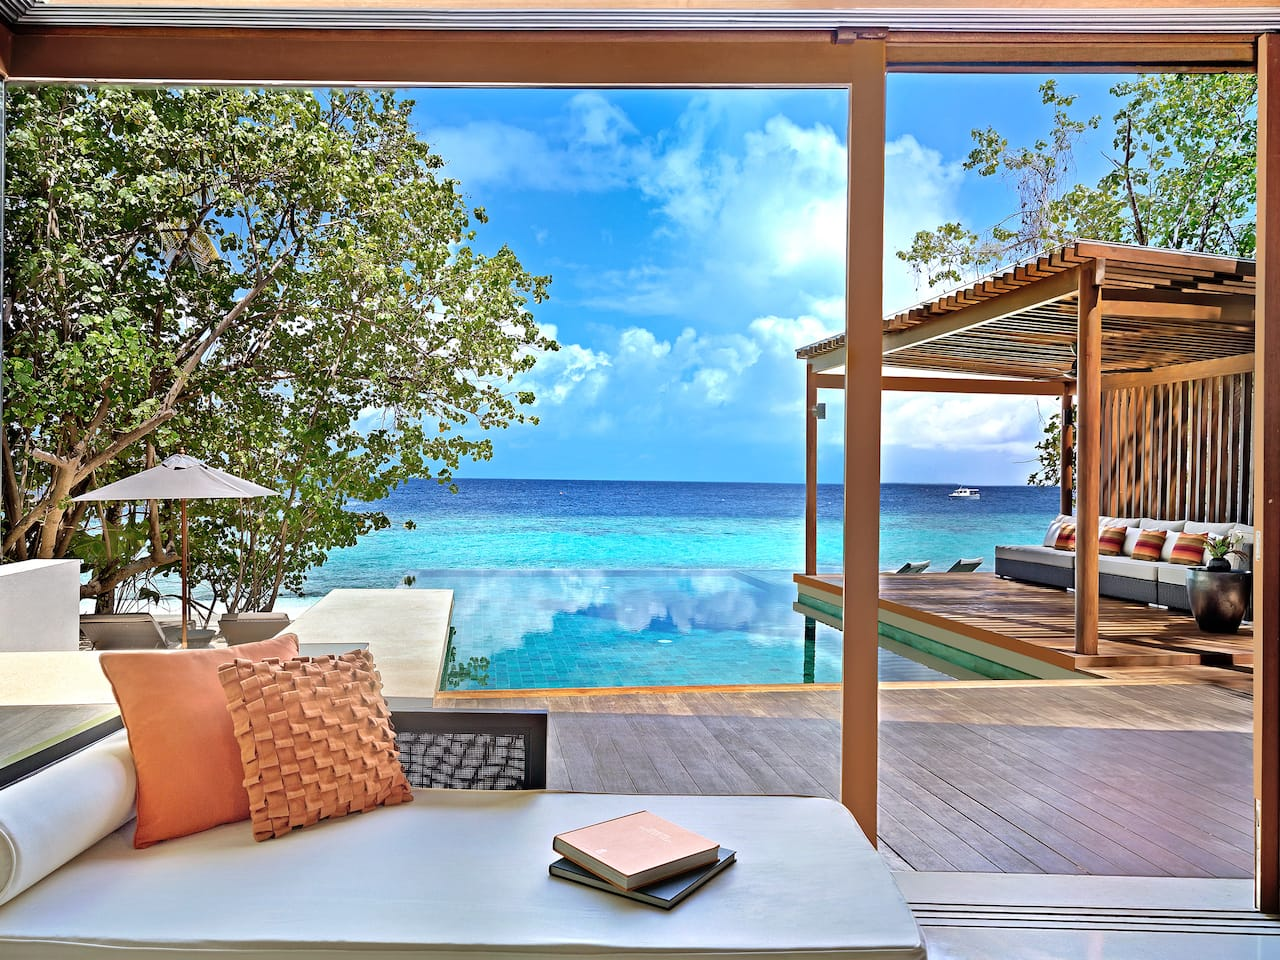 5-star Maldives Resort Overwater Villa